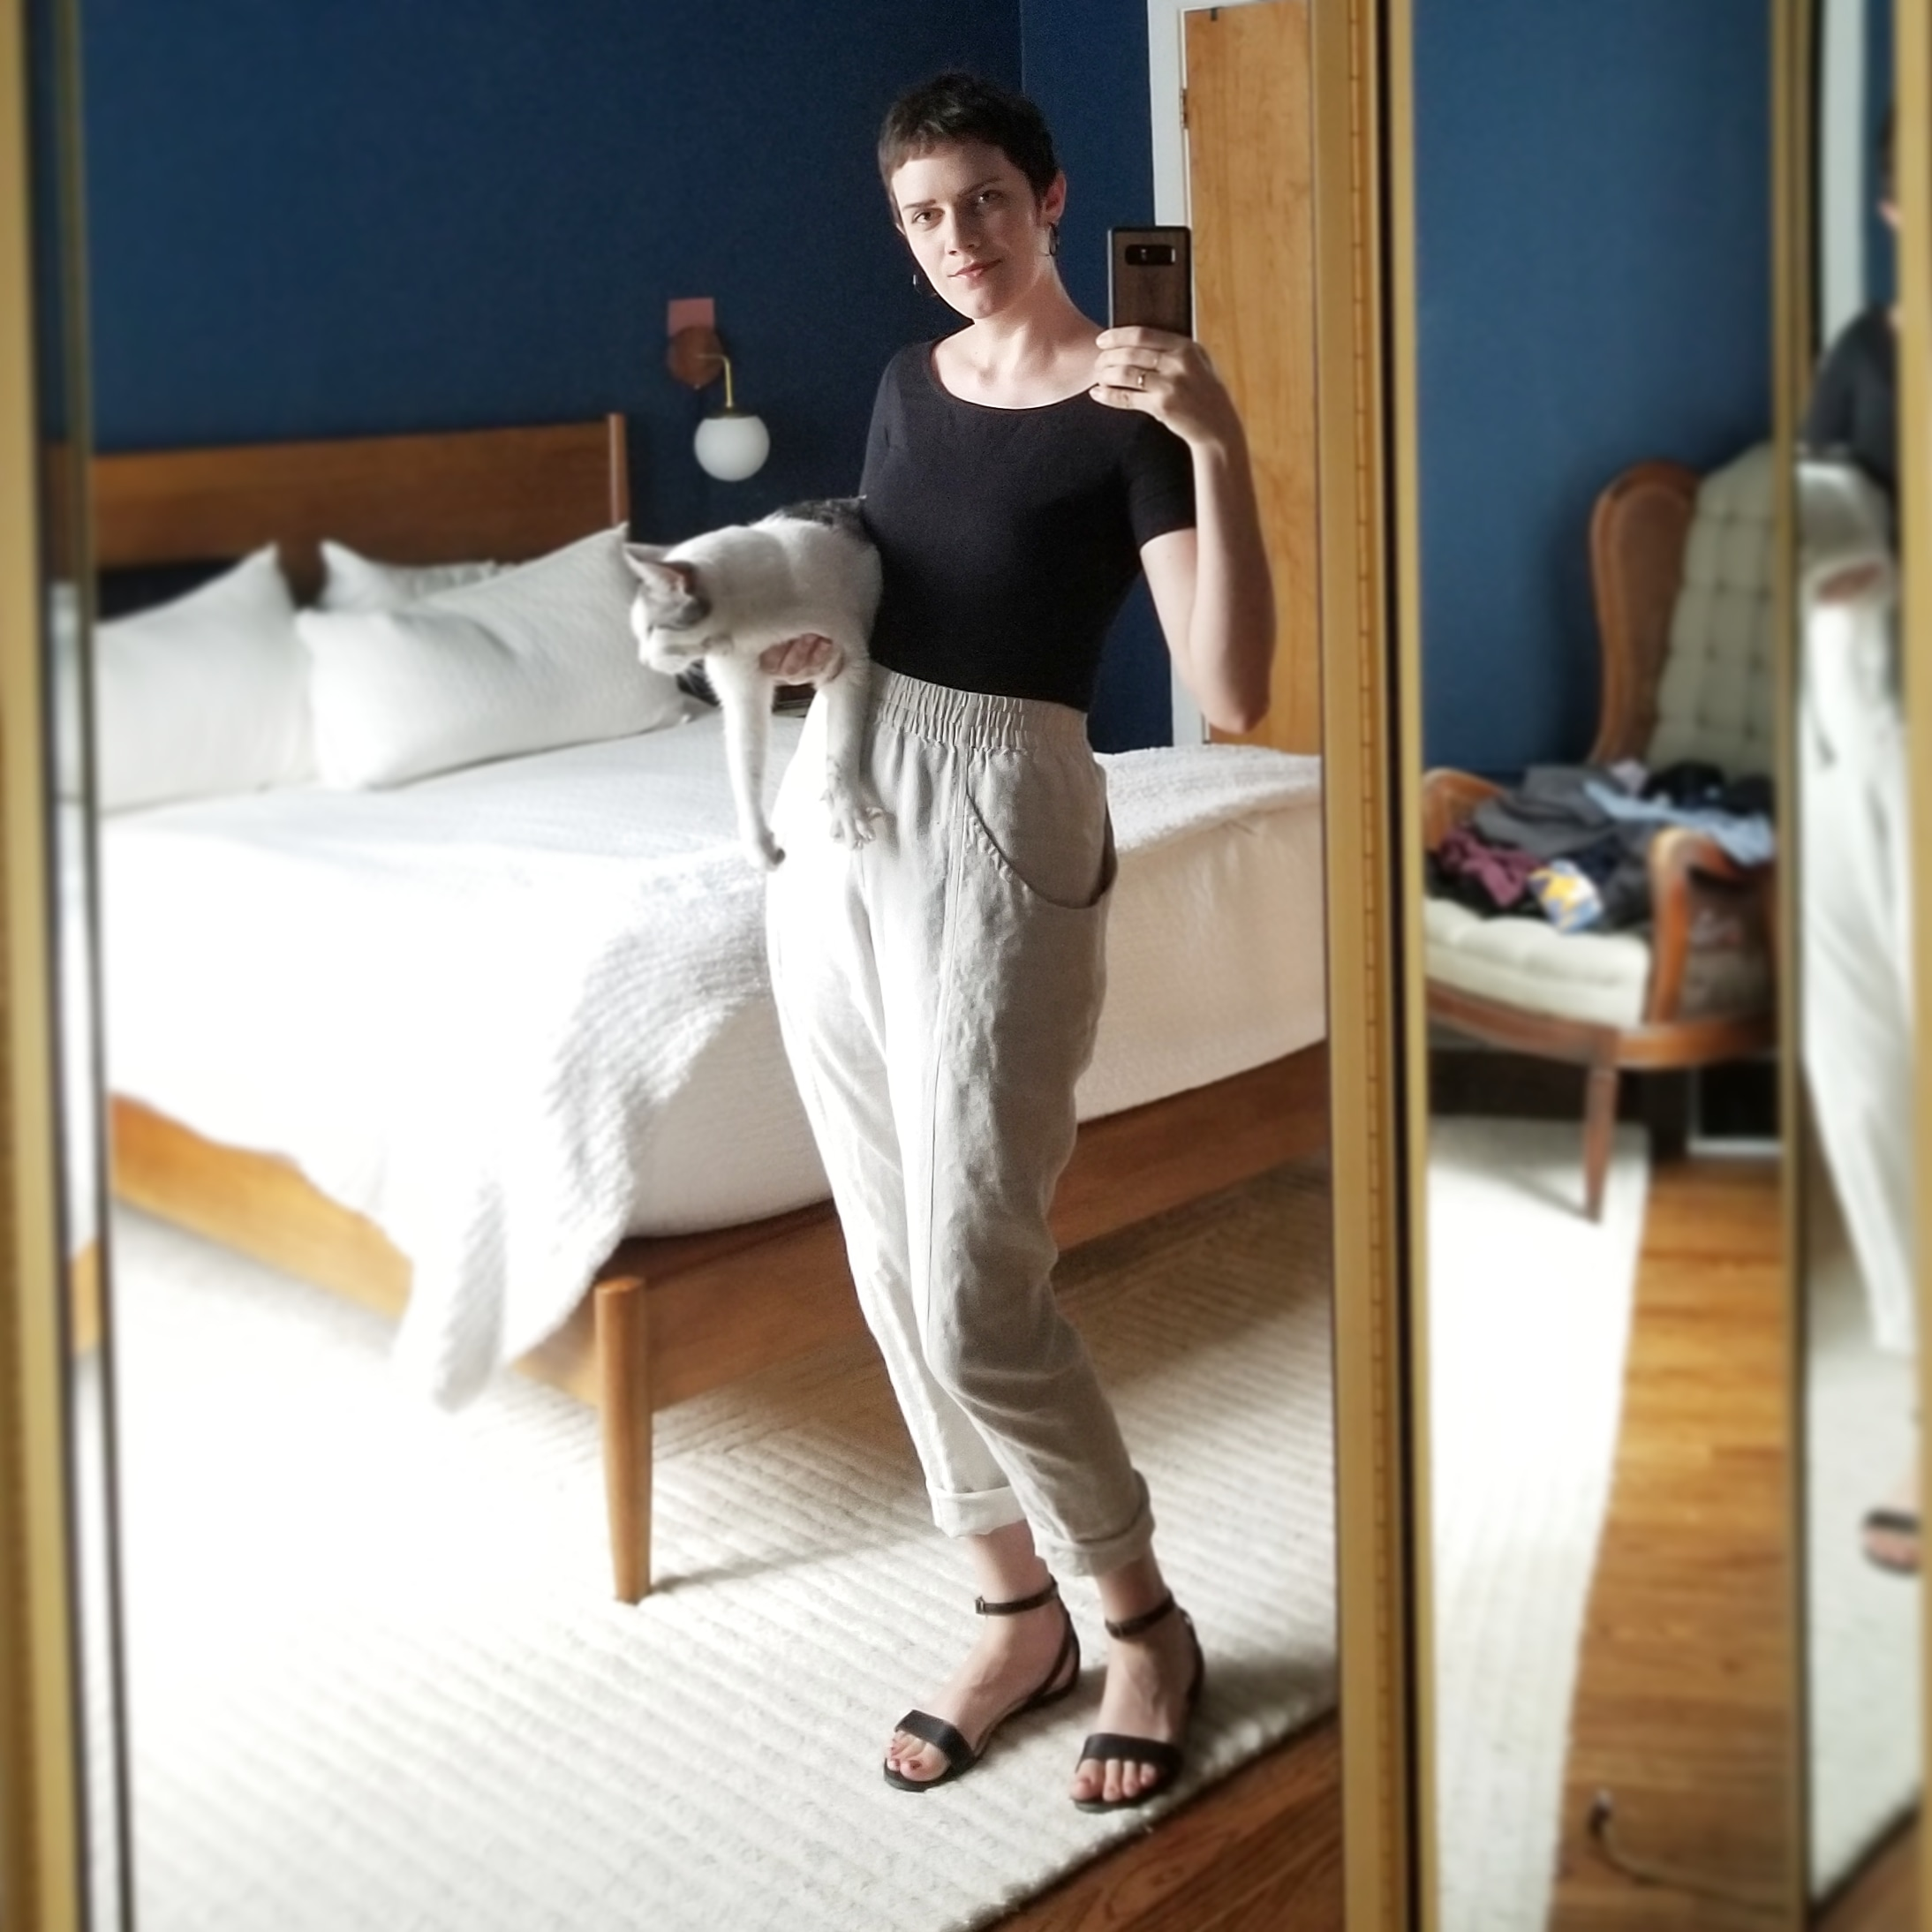 Monday - July 16, 2018This feels like a very. Go-to sort of outfit. Comfy linen pants+ tucked in tee = done. Wearing the Jenna ballet-back top from Amour Vert, Elizabeth Suzanne clyde pants, and Nisolo Serena sandals. And Stuart.